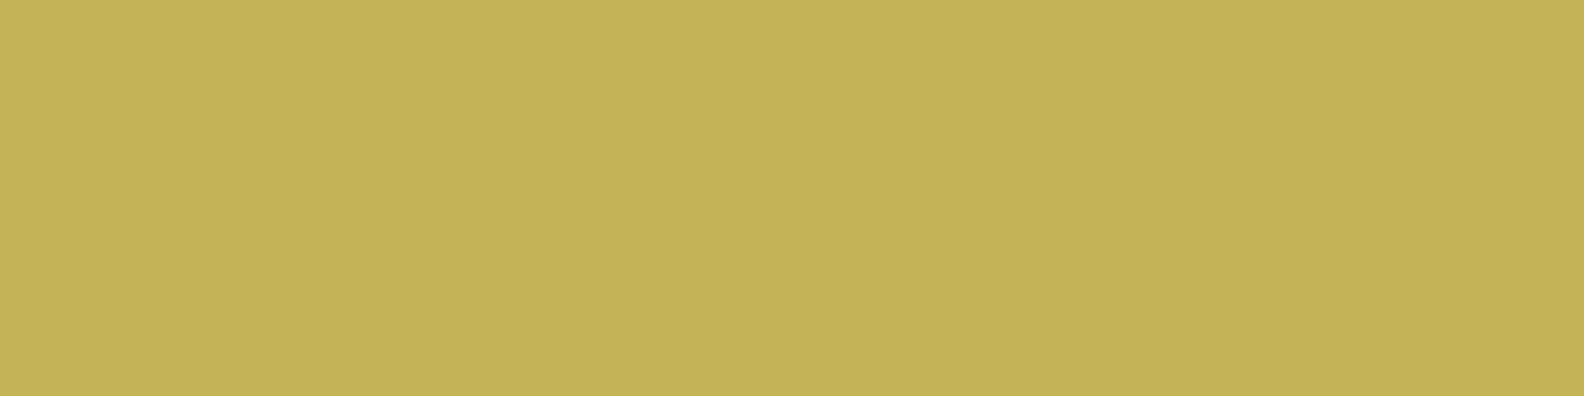 1584x396 Vegas Gold Solid Color Background